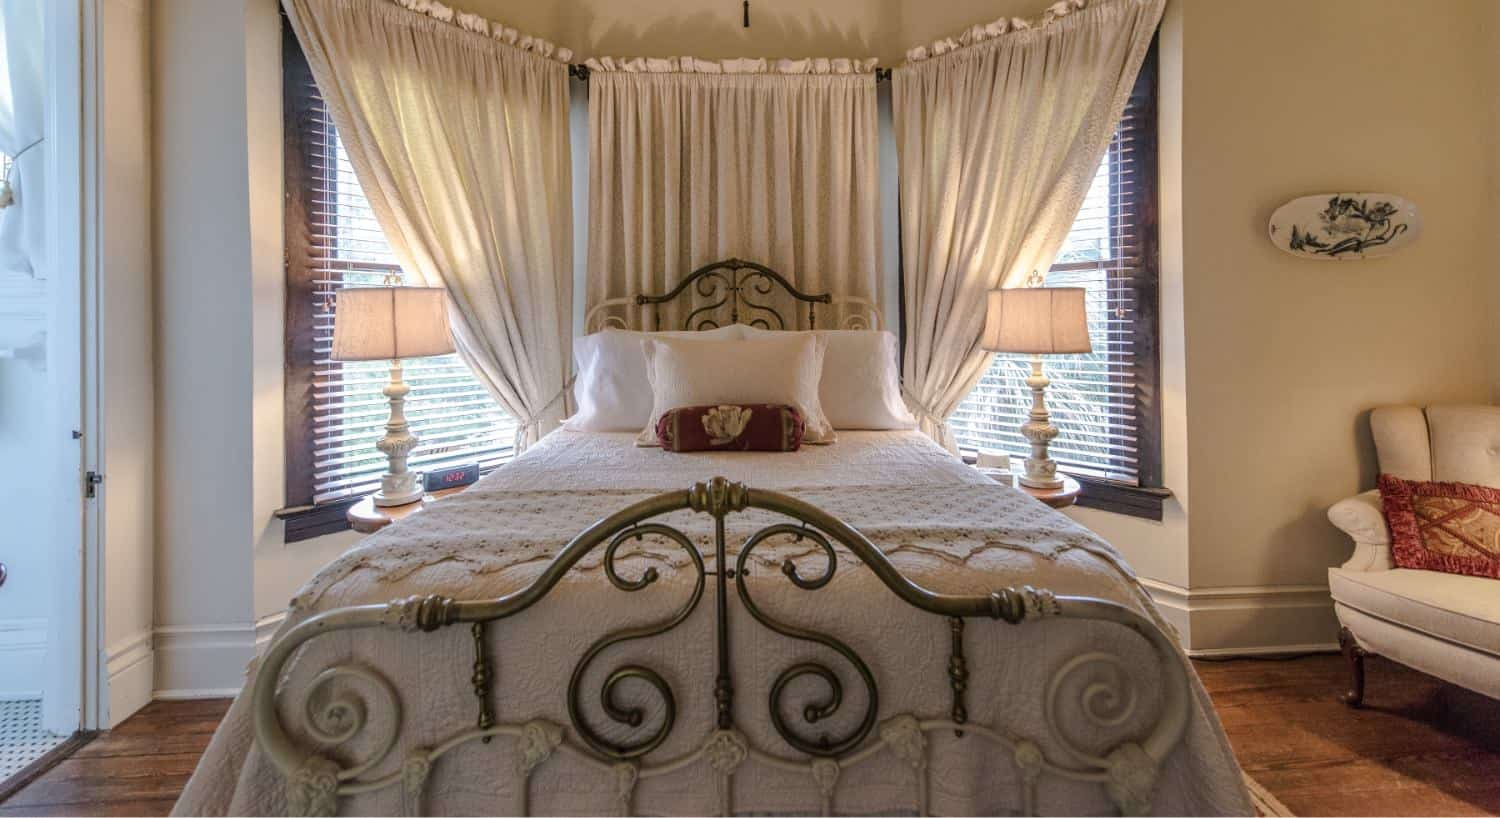 Bedroom with cream-colored walls, hardwood floors, iron bed with cream bedding, and cream upholstered chair